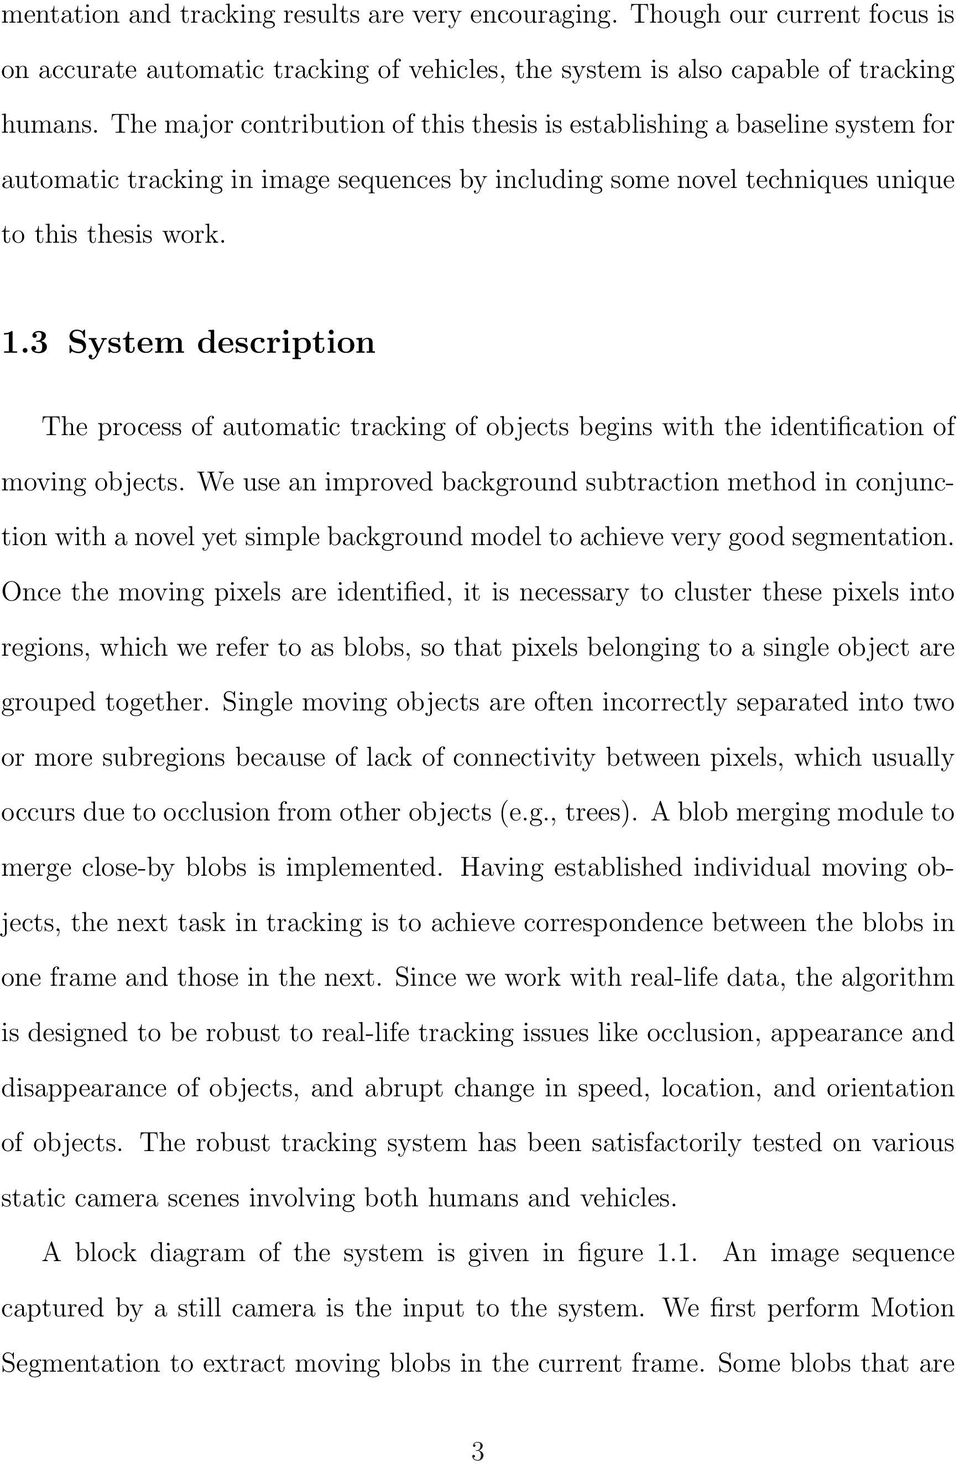 3 System description The process of automatic tracking of objects begins with the identification of moving objects.